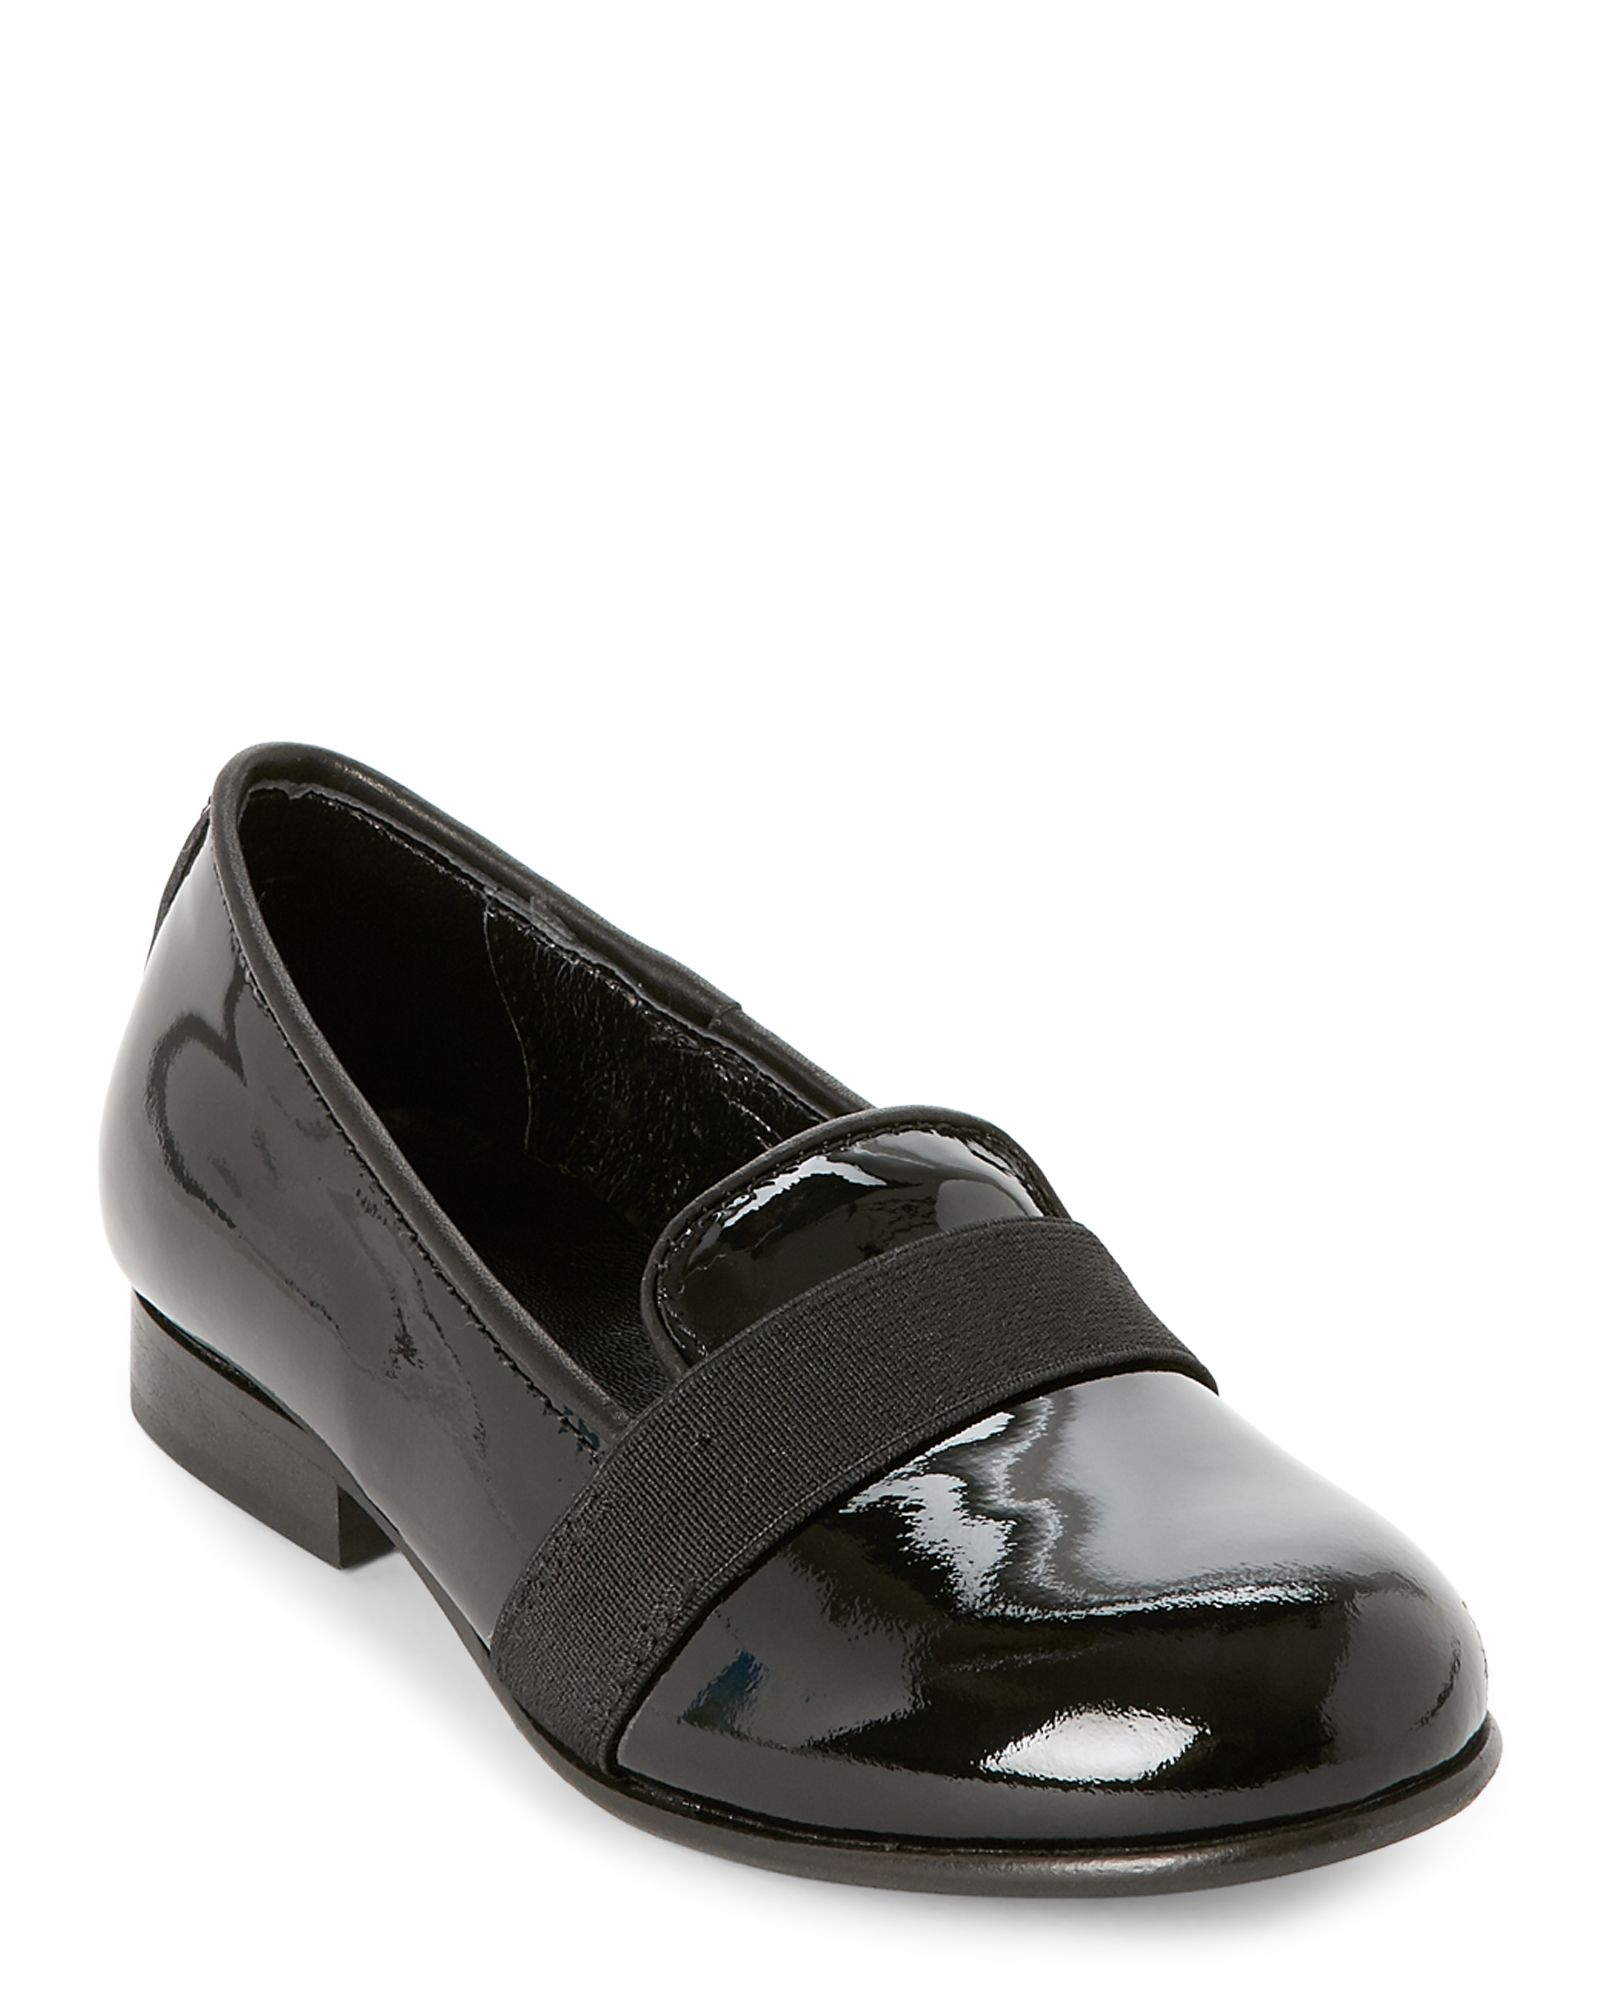 88412361dc75 Toddler/Kids Boys) Black Patent Leather Loafers | *Apparel ...